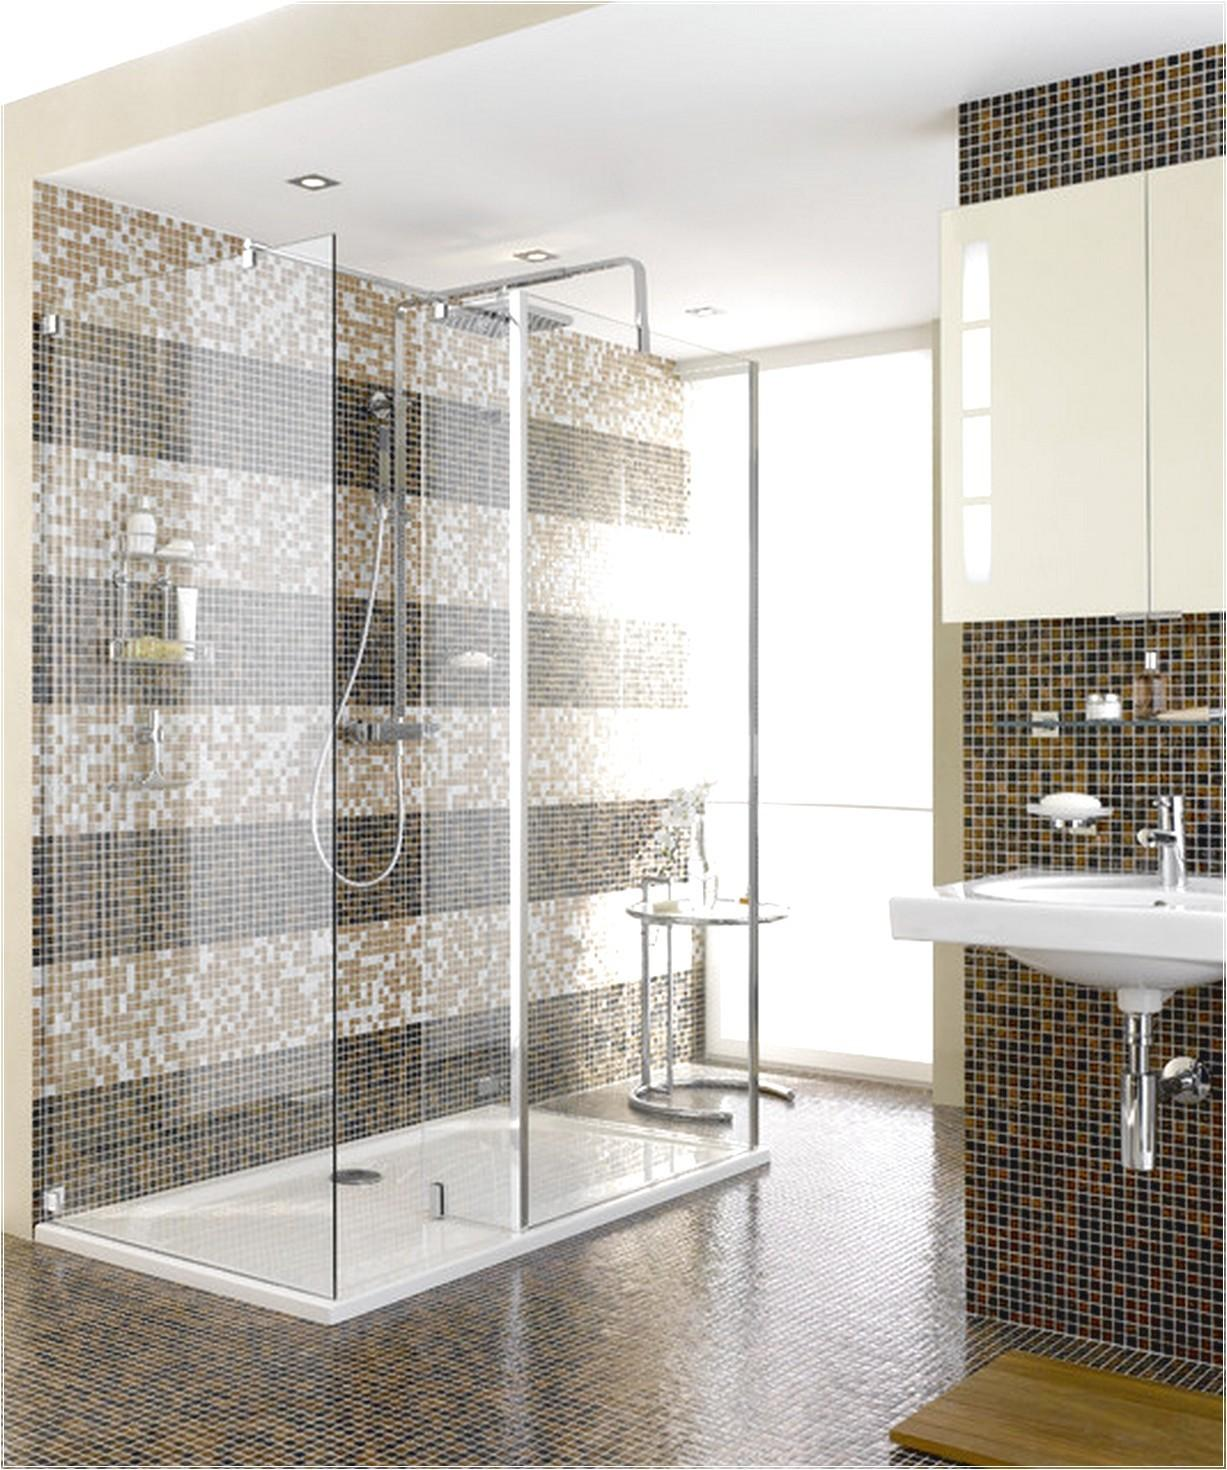 Difference Bathroom Shower Tile Modern Classic